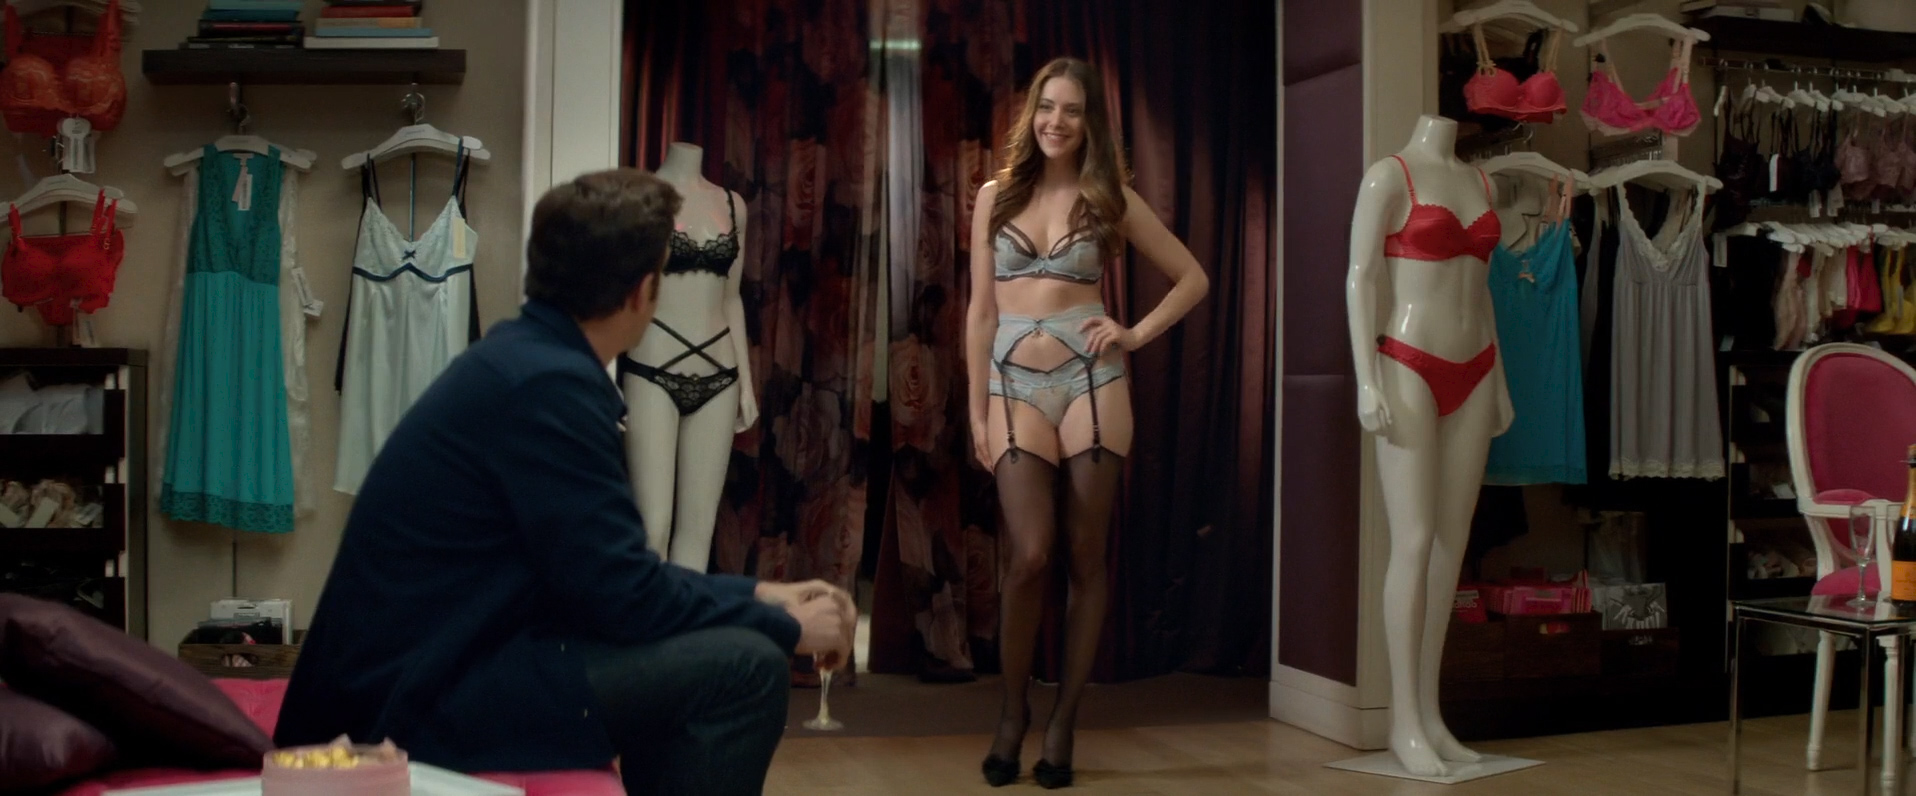 Alison Brie hot lingerie and butt in thong Amanda Peet hot - Sleeping with Other People (2015) HD 1080p (7)